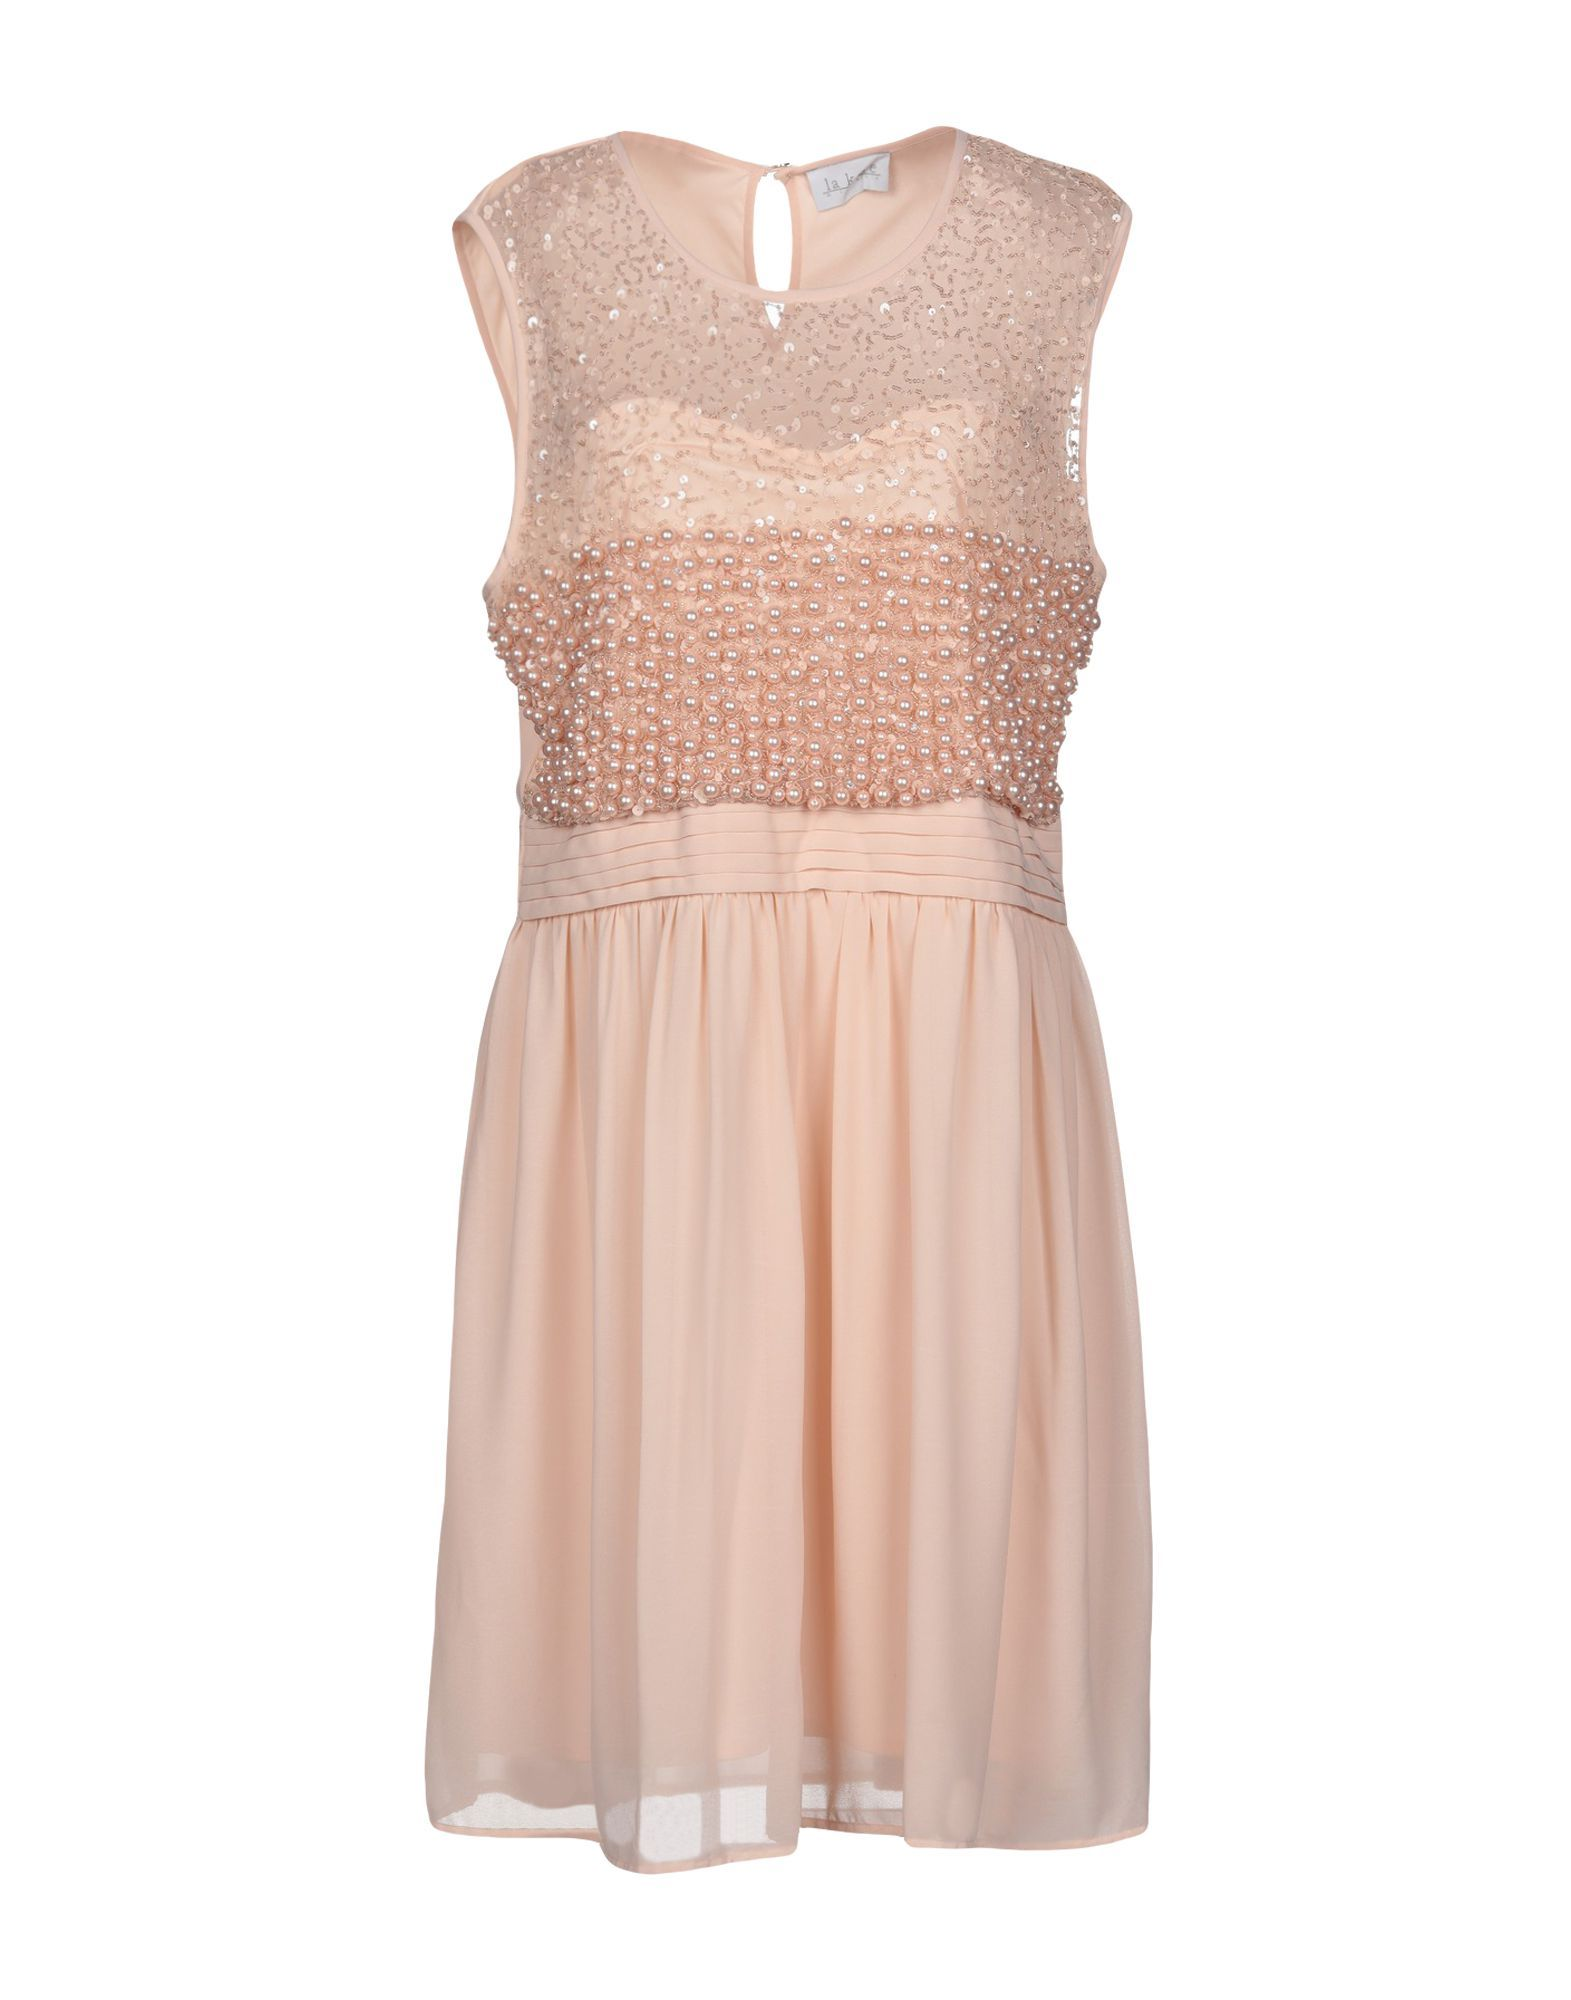 La Kore Pink Crepe And Tulle Sequinned Sleeveless Dress